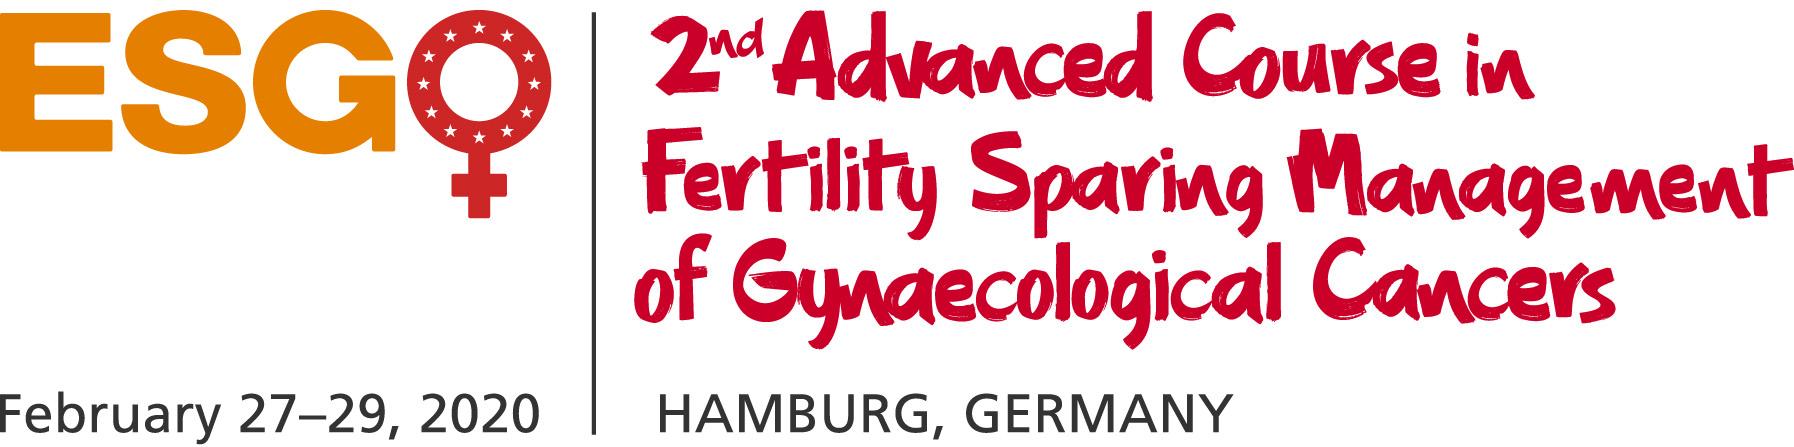 2nd ESGO Advanced Course in Fertility Sparing Management.kr